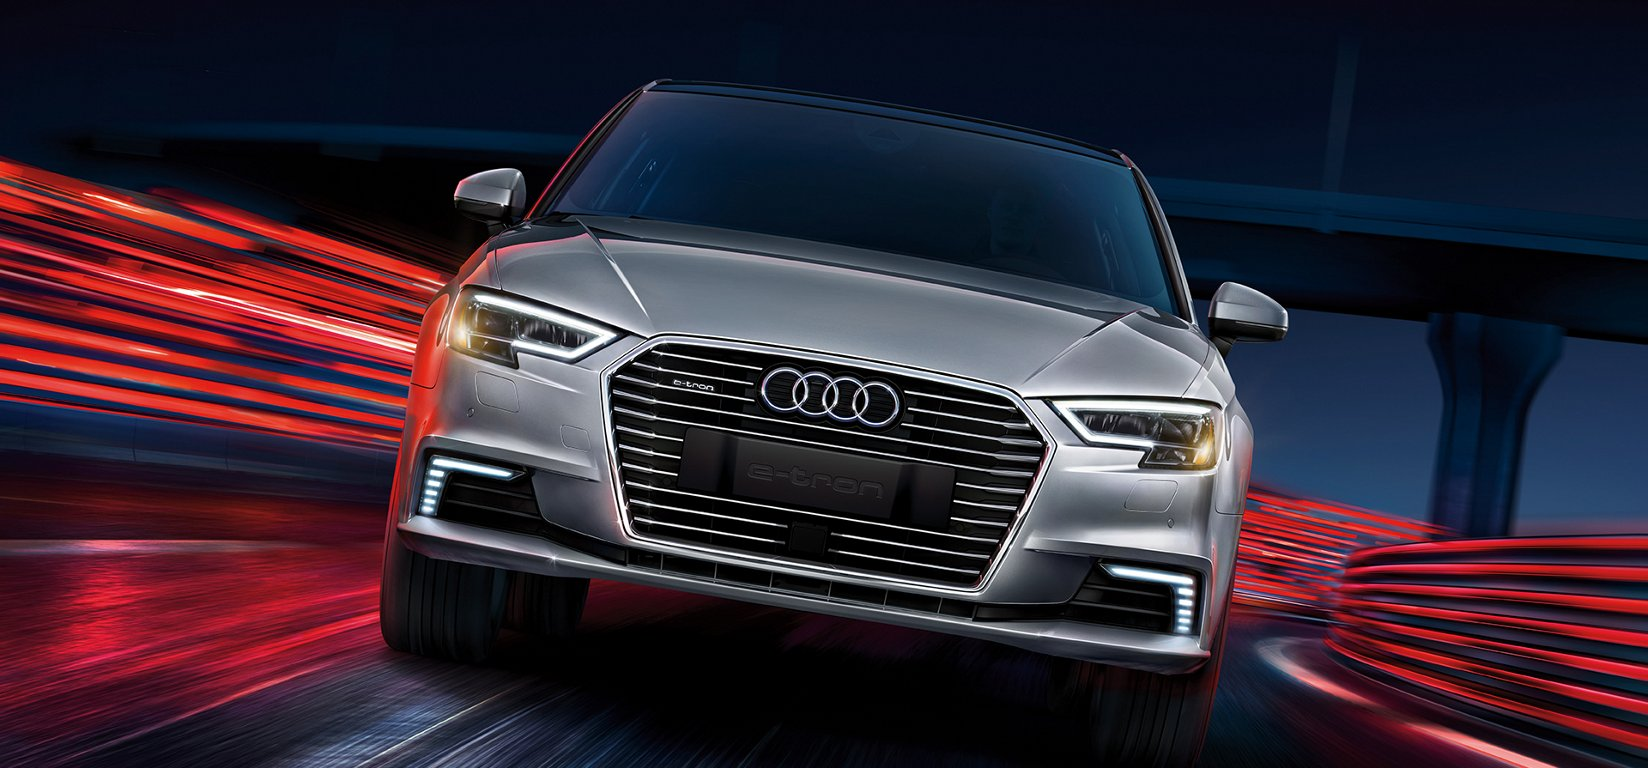 New Audi A Sportback Price Lease Offers Wausau WI - Current audi offers